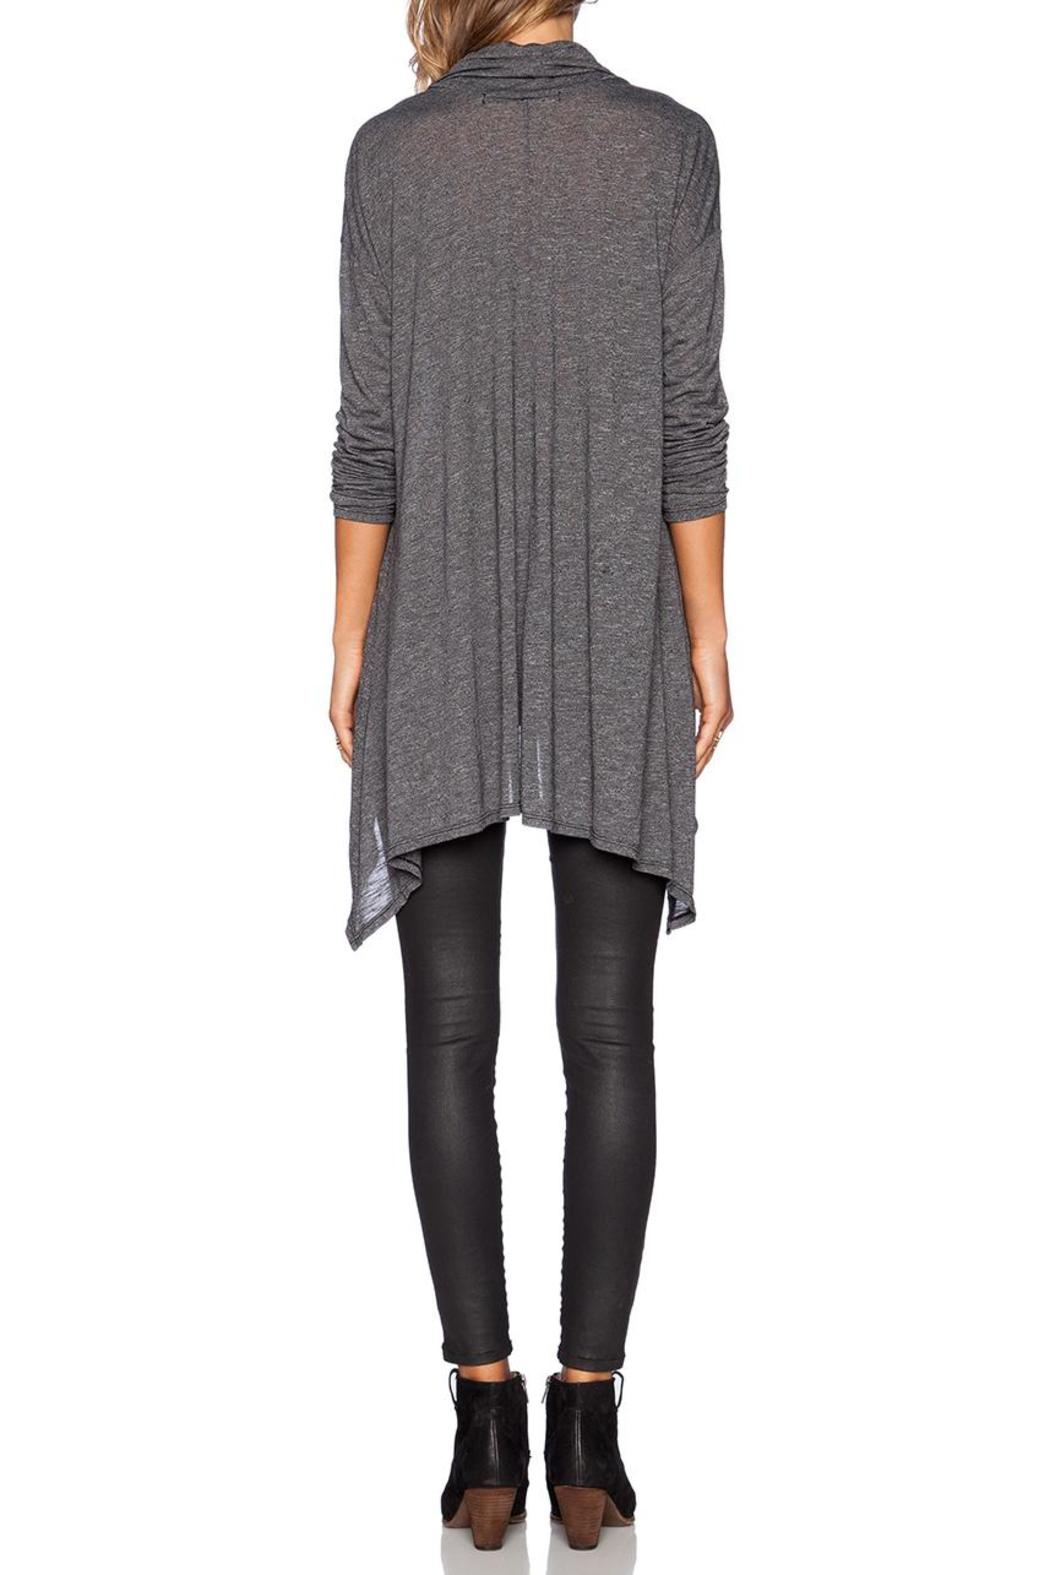 Michael Stars Cowl Neck Poncho - Side Cropped Image